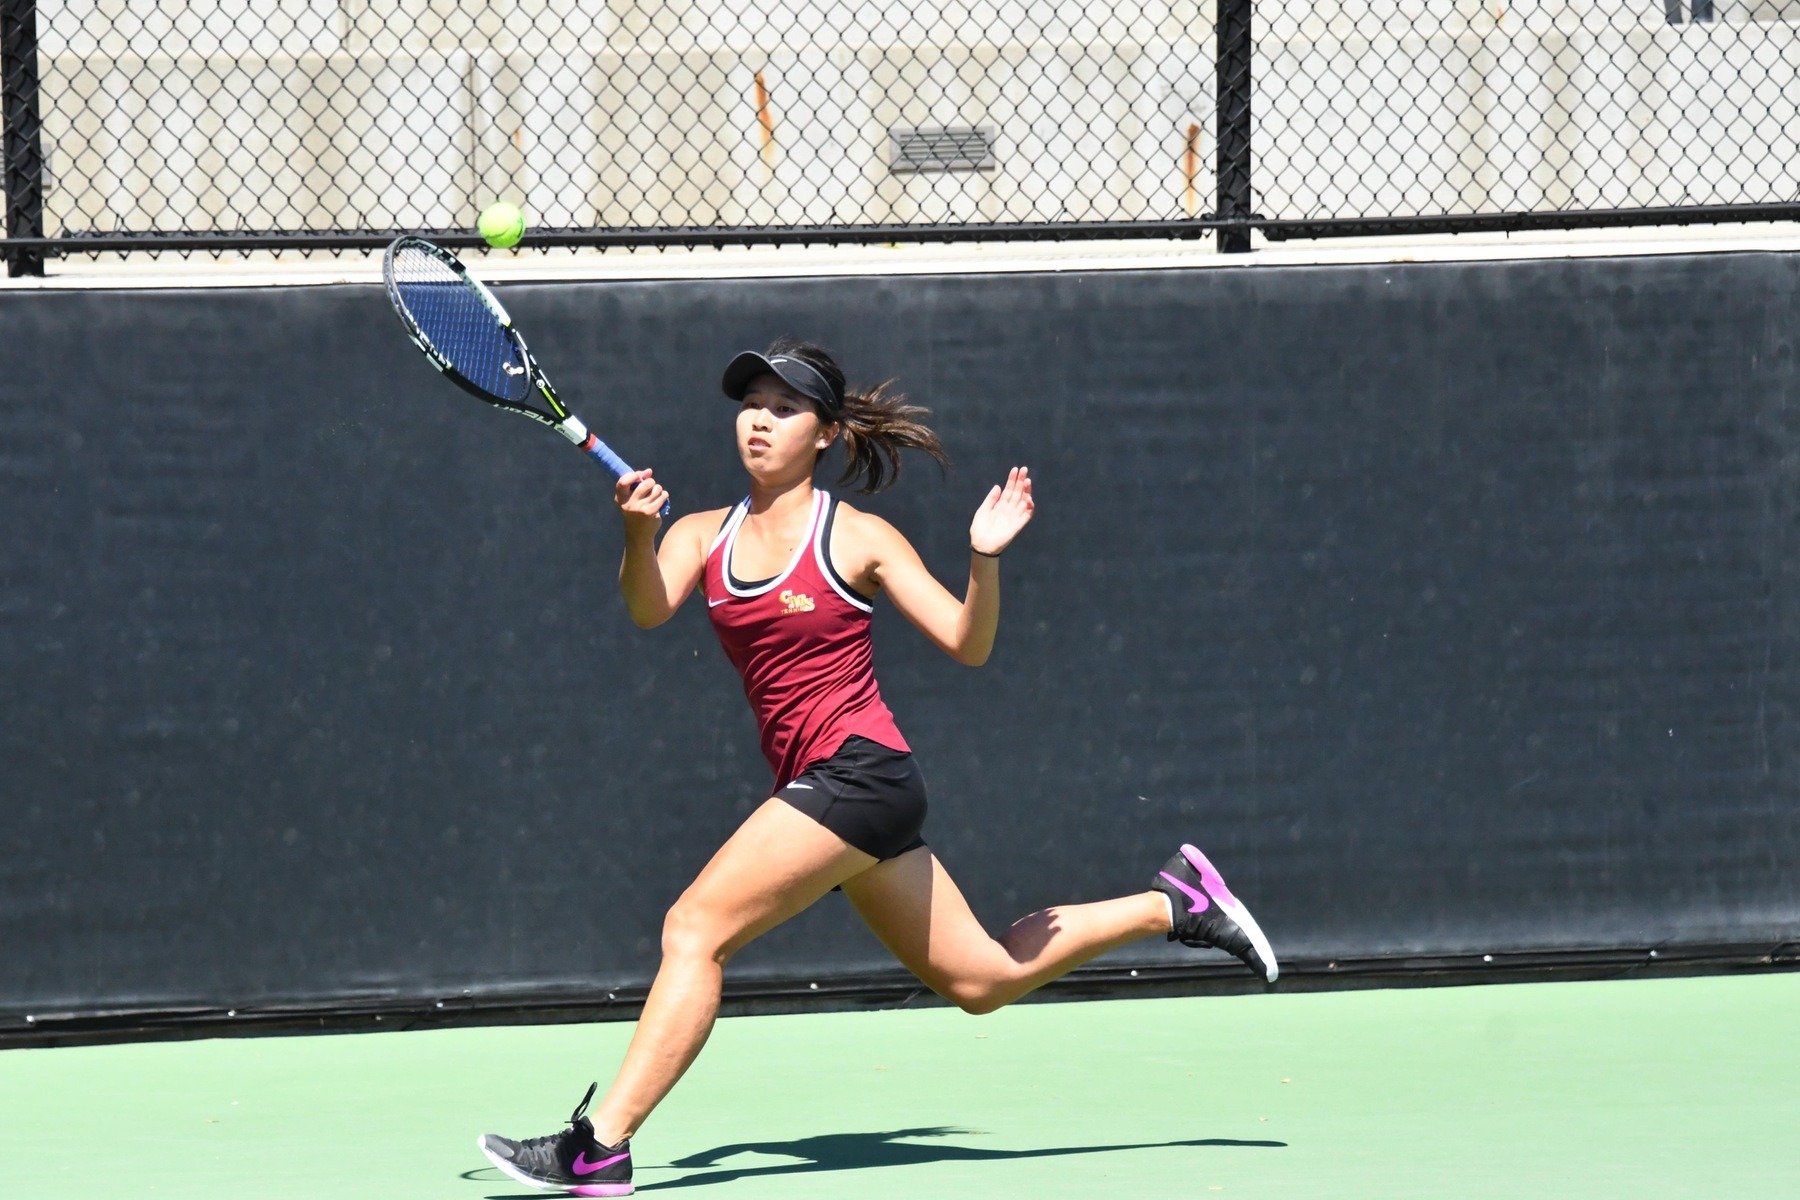 CMS Defeats Pomona-Pitzer to Advance to Women's Tennis Elite 8